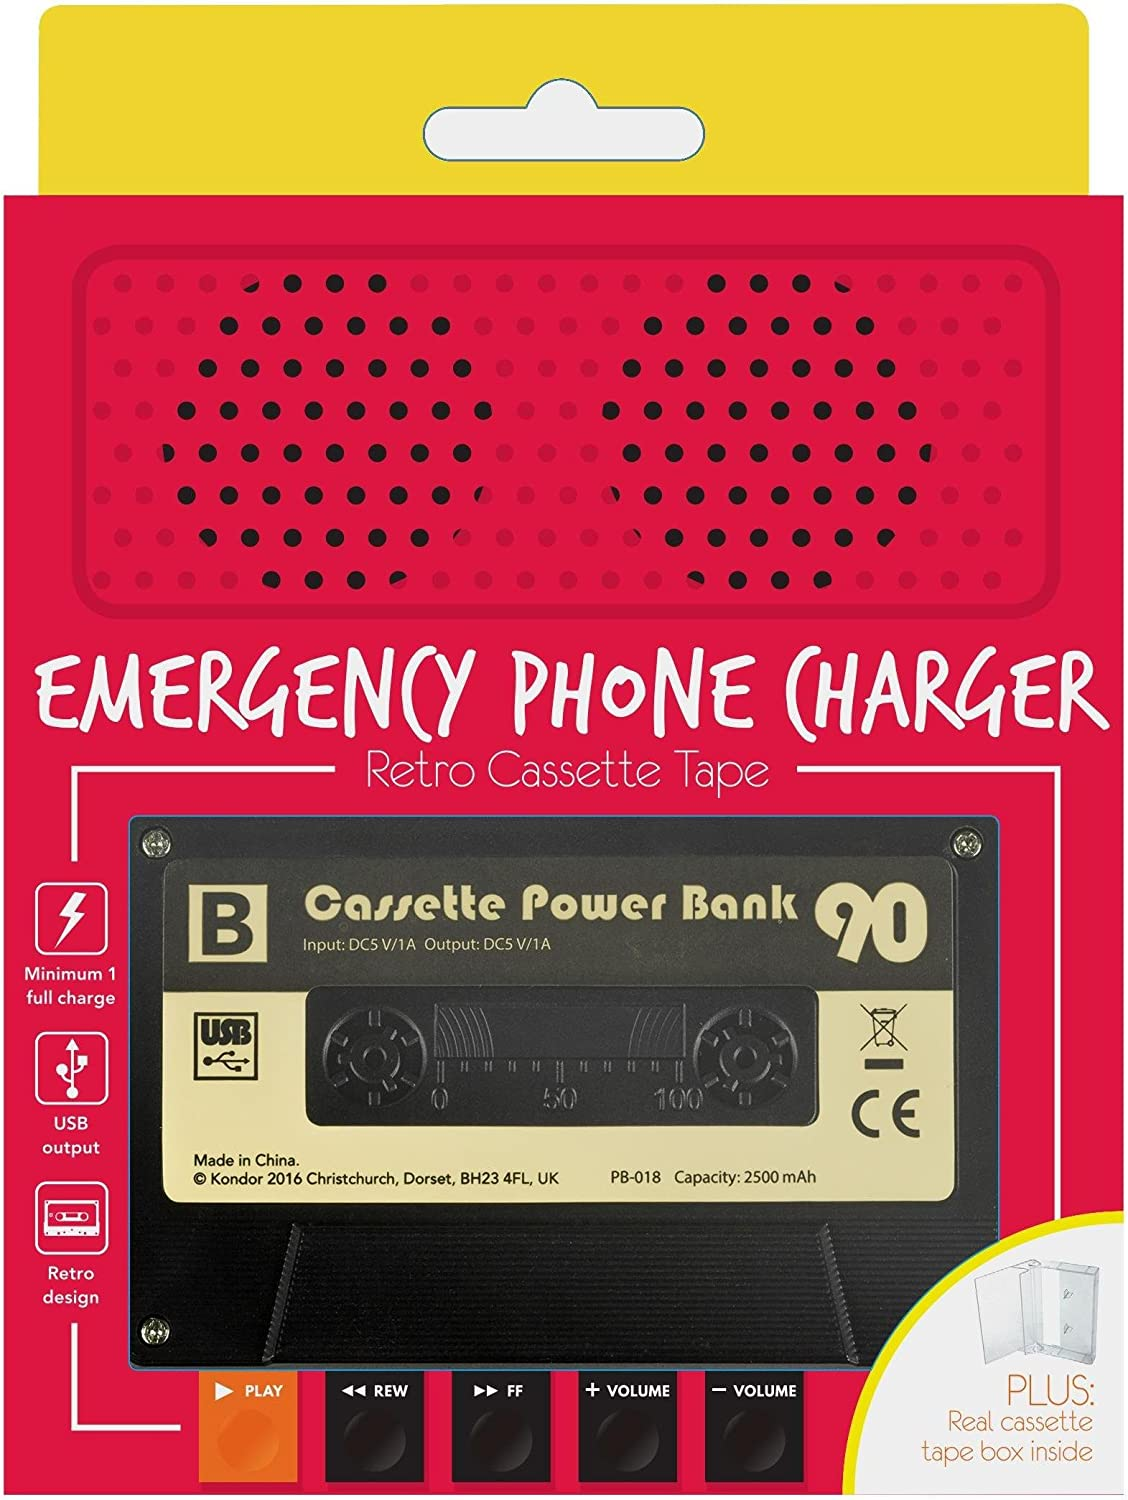 Gifting Cassette Tape Emergency Phone Charger Powerbank Black